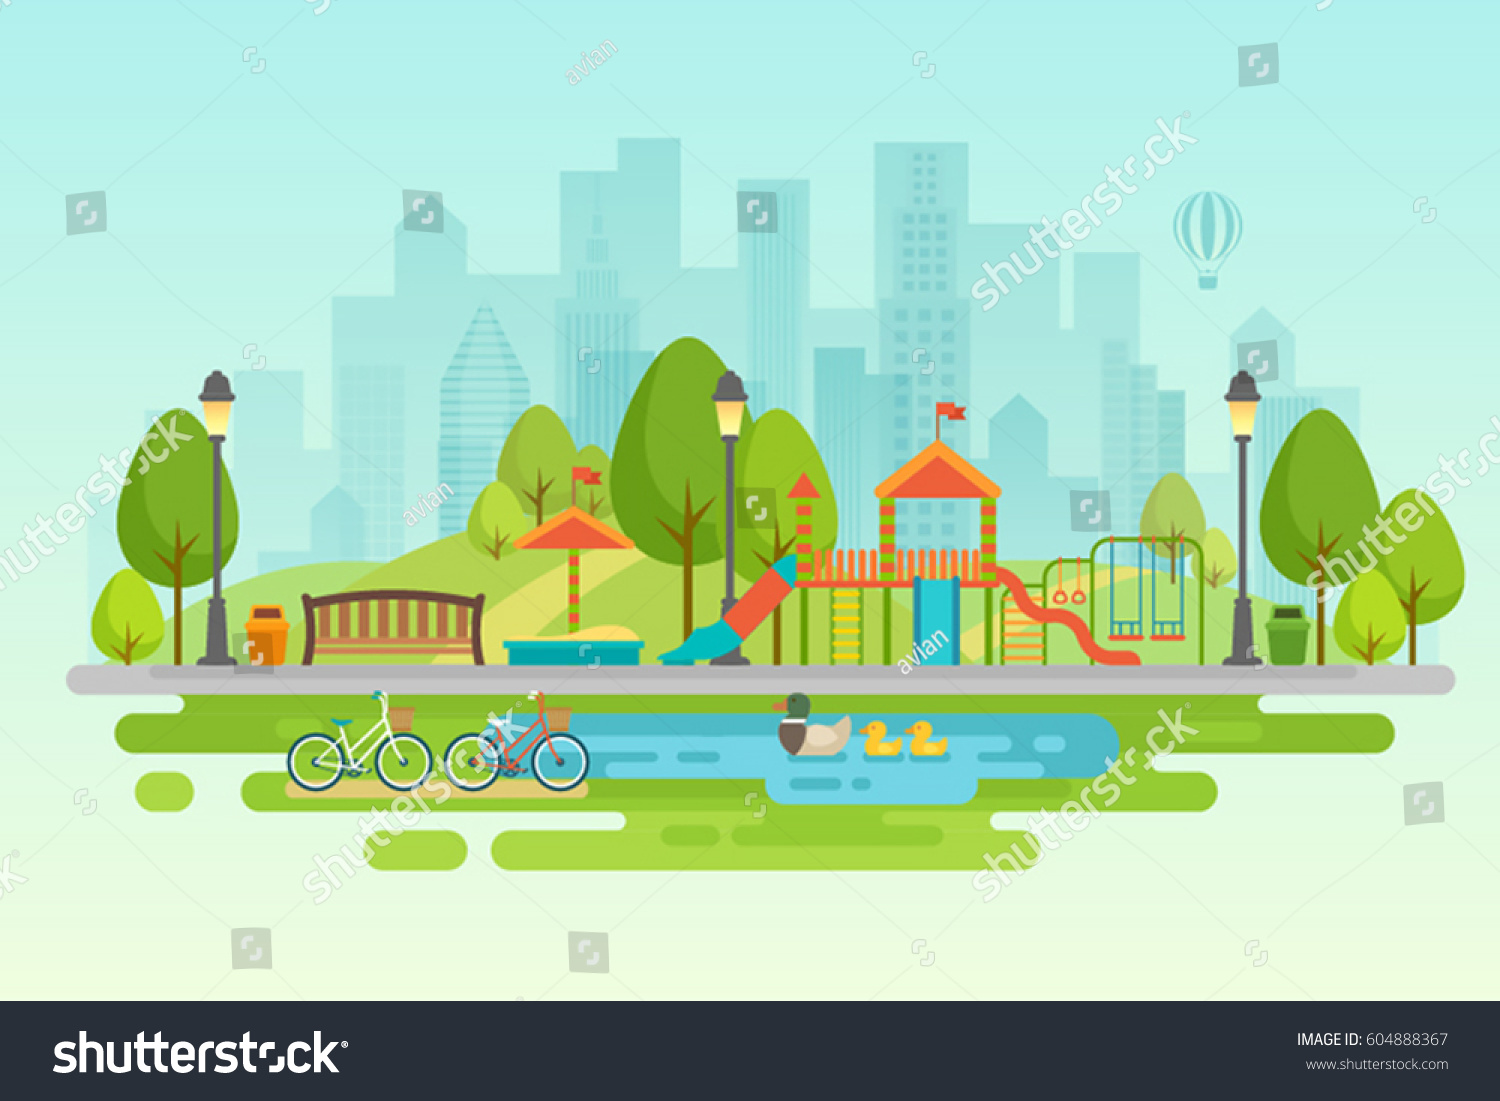 Kids playground with playing equipment, City park with outdoor decor. #604888367